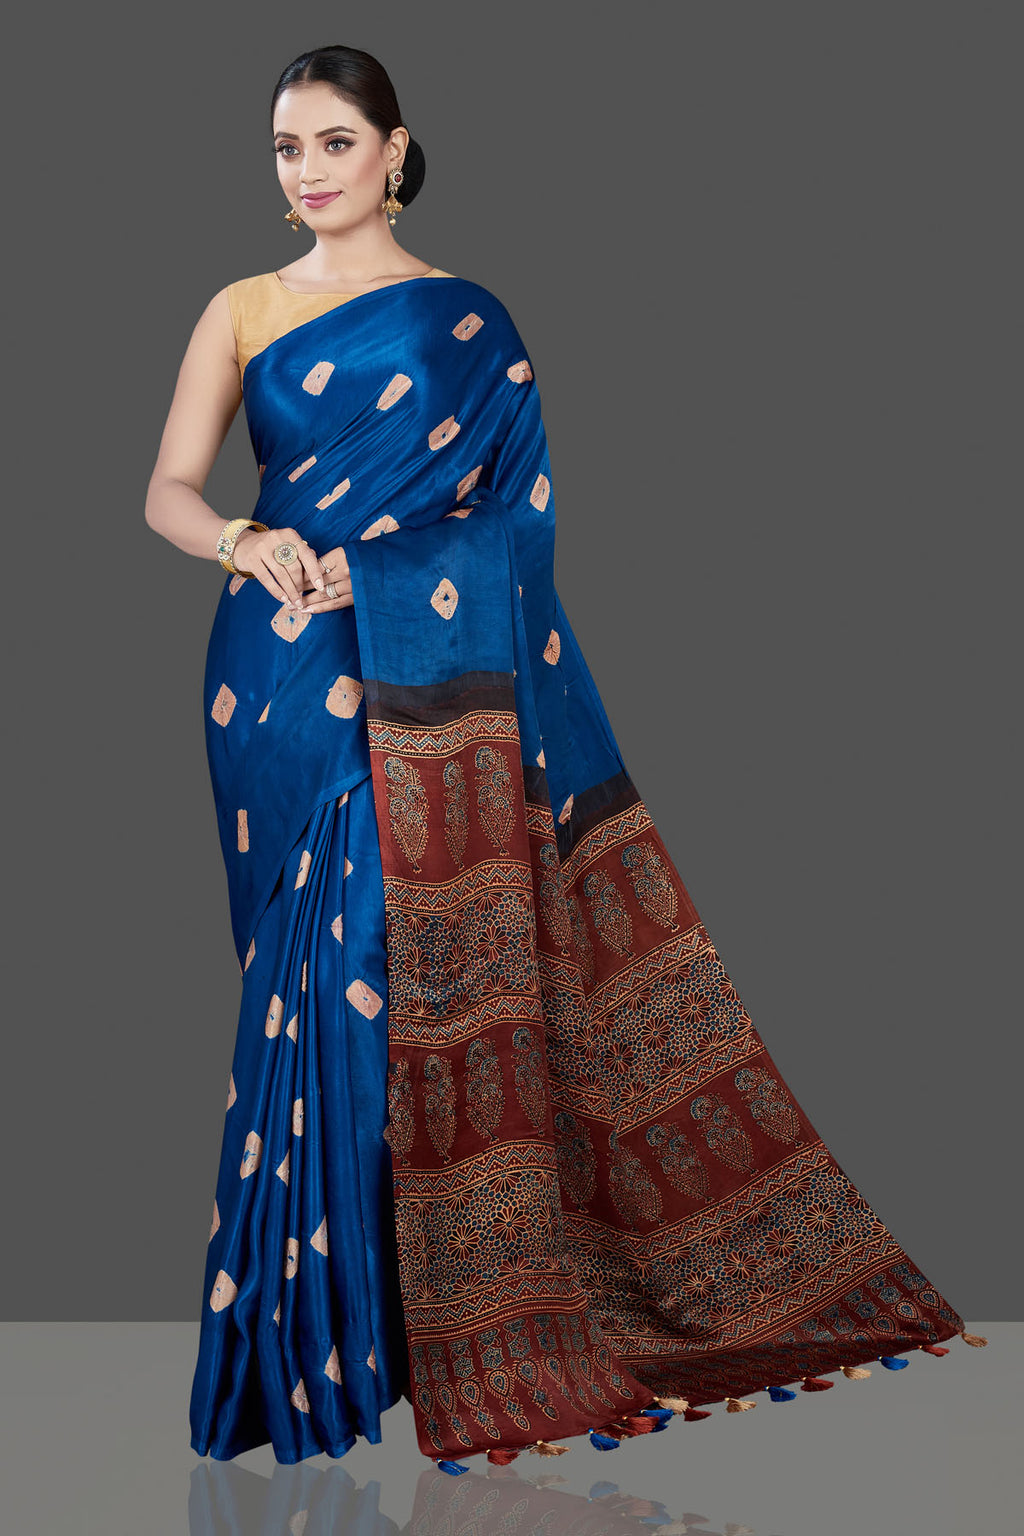 Shop stunning blue Bandhej print saree online in USA with Ajrakh pallu. Be the talk of the occasion in exquisite designer sarees, pure silk sarees, tussar saris, embroidered sarees, handloom sarees from Pure Elegance Indian fashion store in USA.-full view